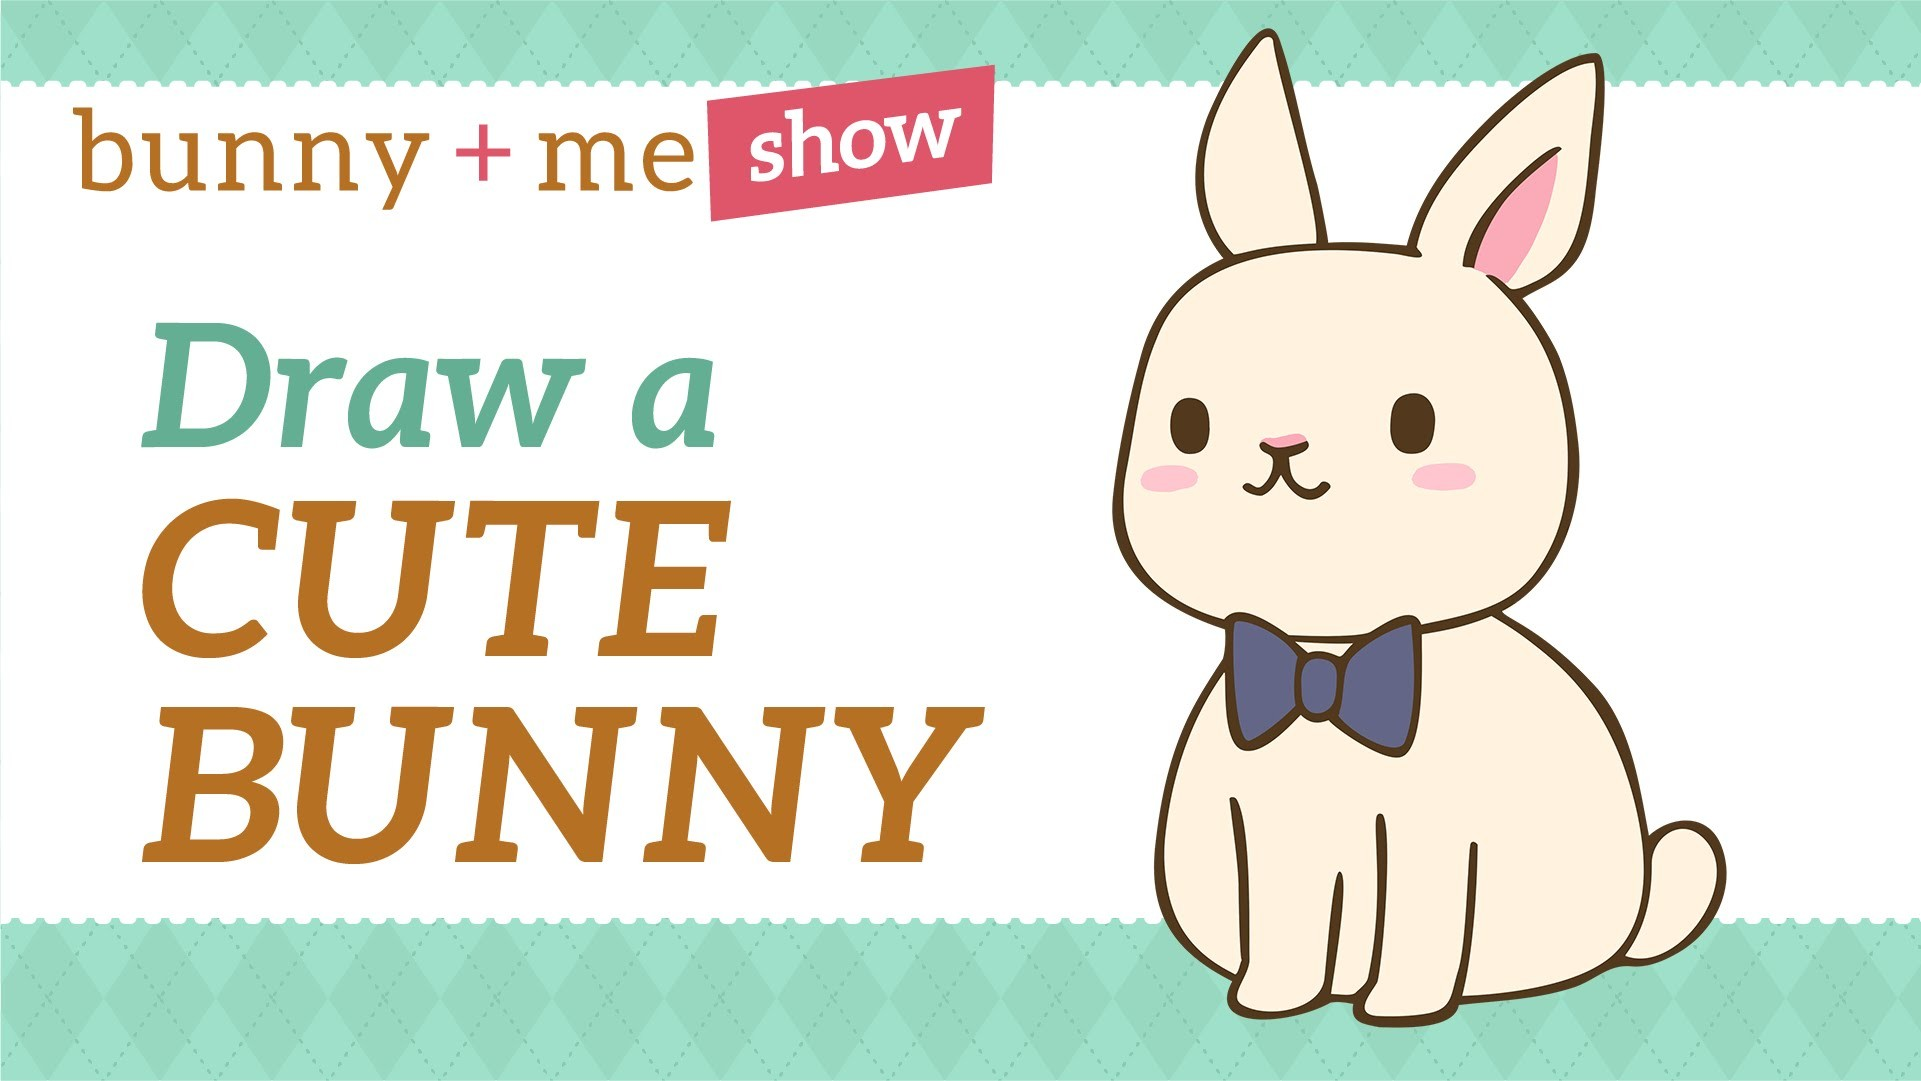 How to draw a Bunny - Easy Kawaii Drawing Tutorial for Beginners